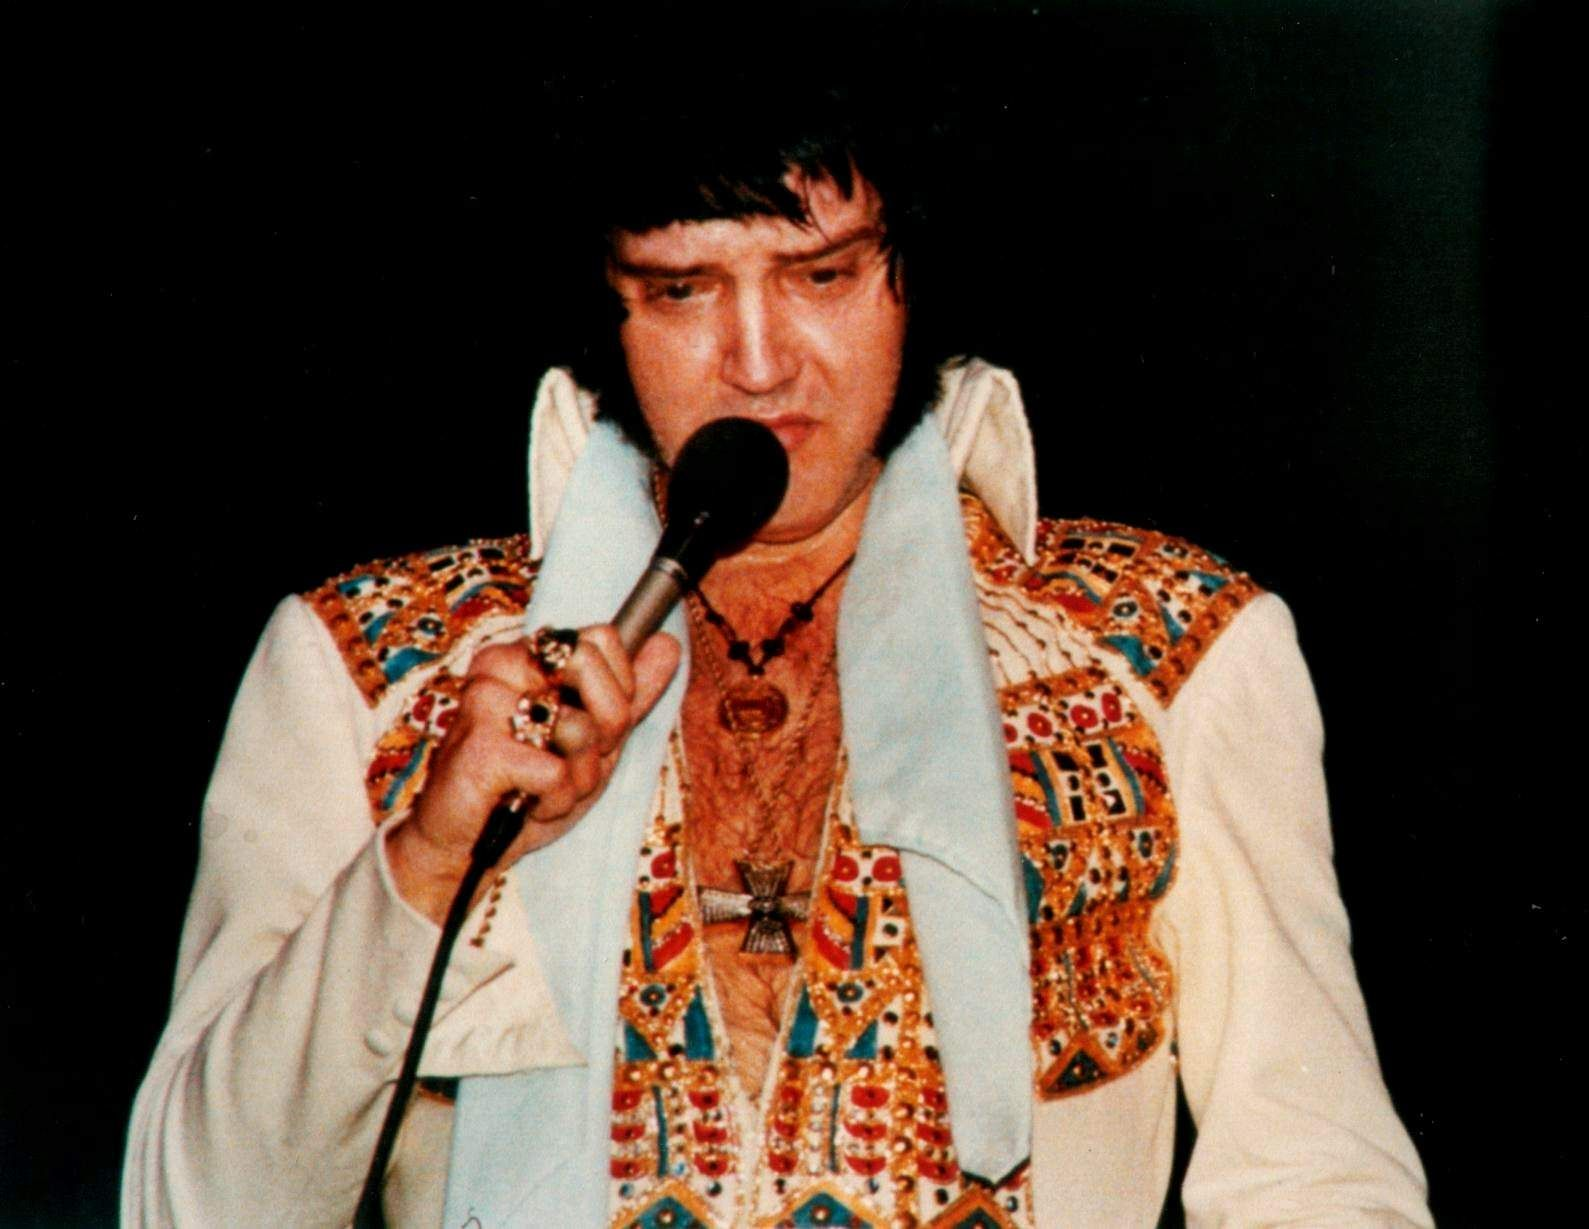 Elvis on stage in Chicago in october 14 1976.